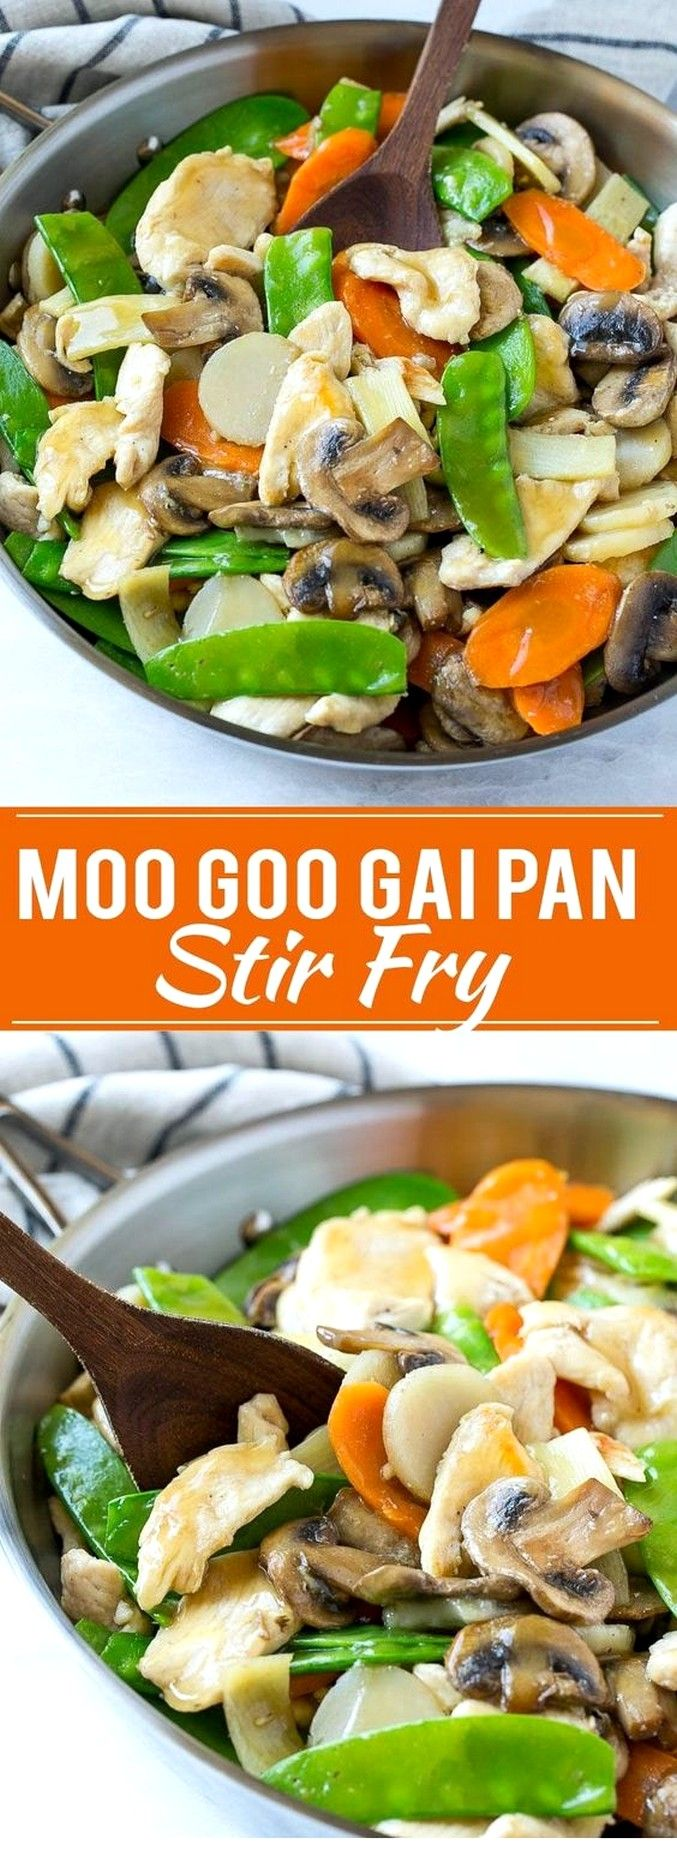 Moo Goo Gai Pan - boneless skinless chicken breasts, egg white, cornstarch (sub xanthan/glucomannan), vegetable oil (might sub another oil/fat), minced garlic, minced ginger, sliced mushrooms, snow peas, thinly sliced carrots, canned sliced water chestnuts